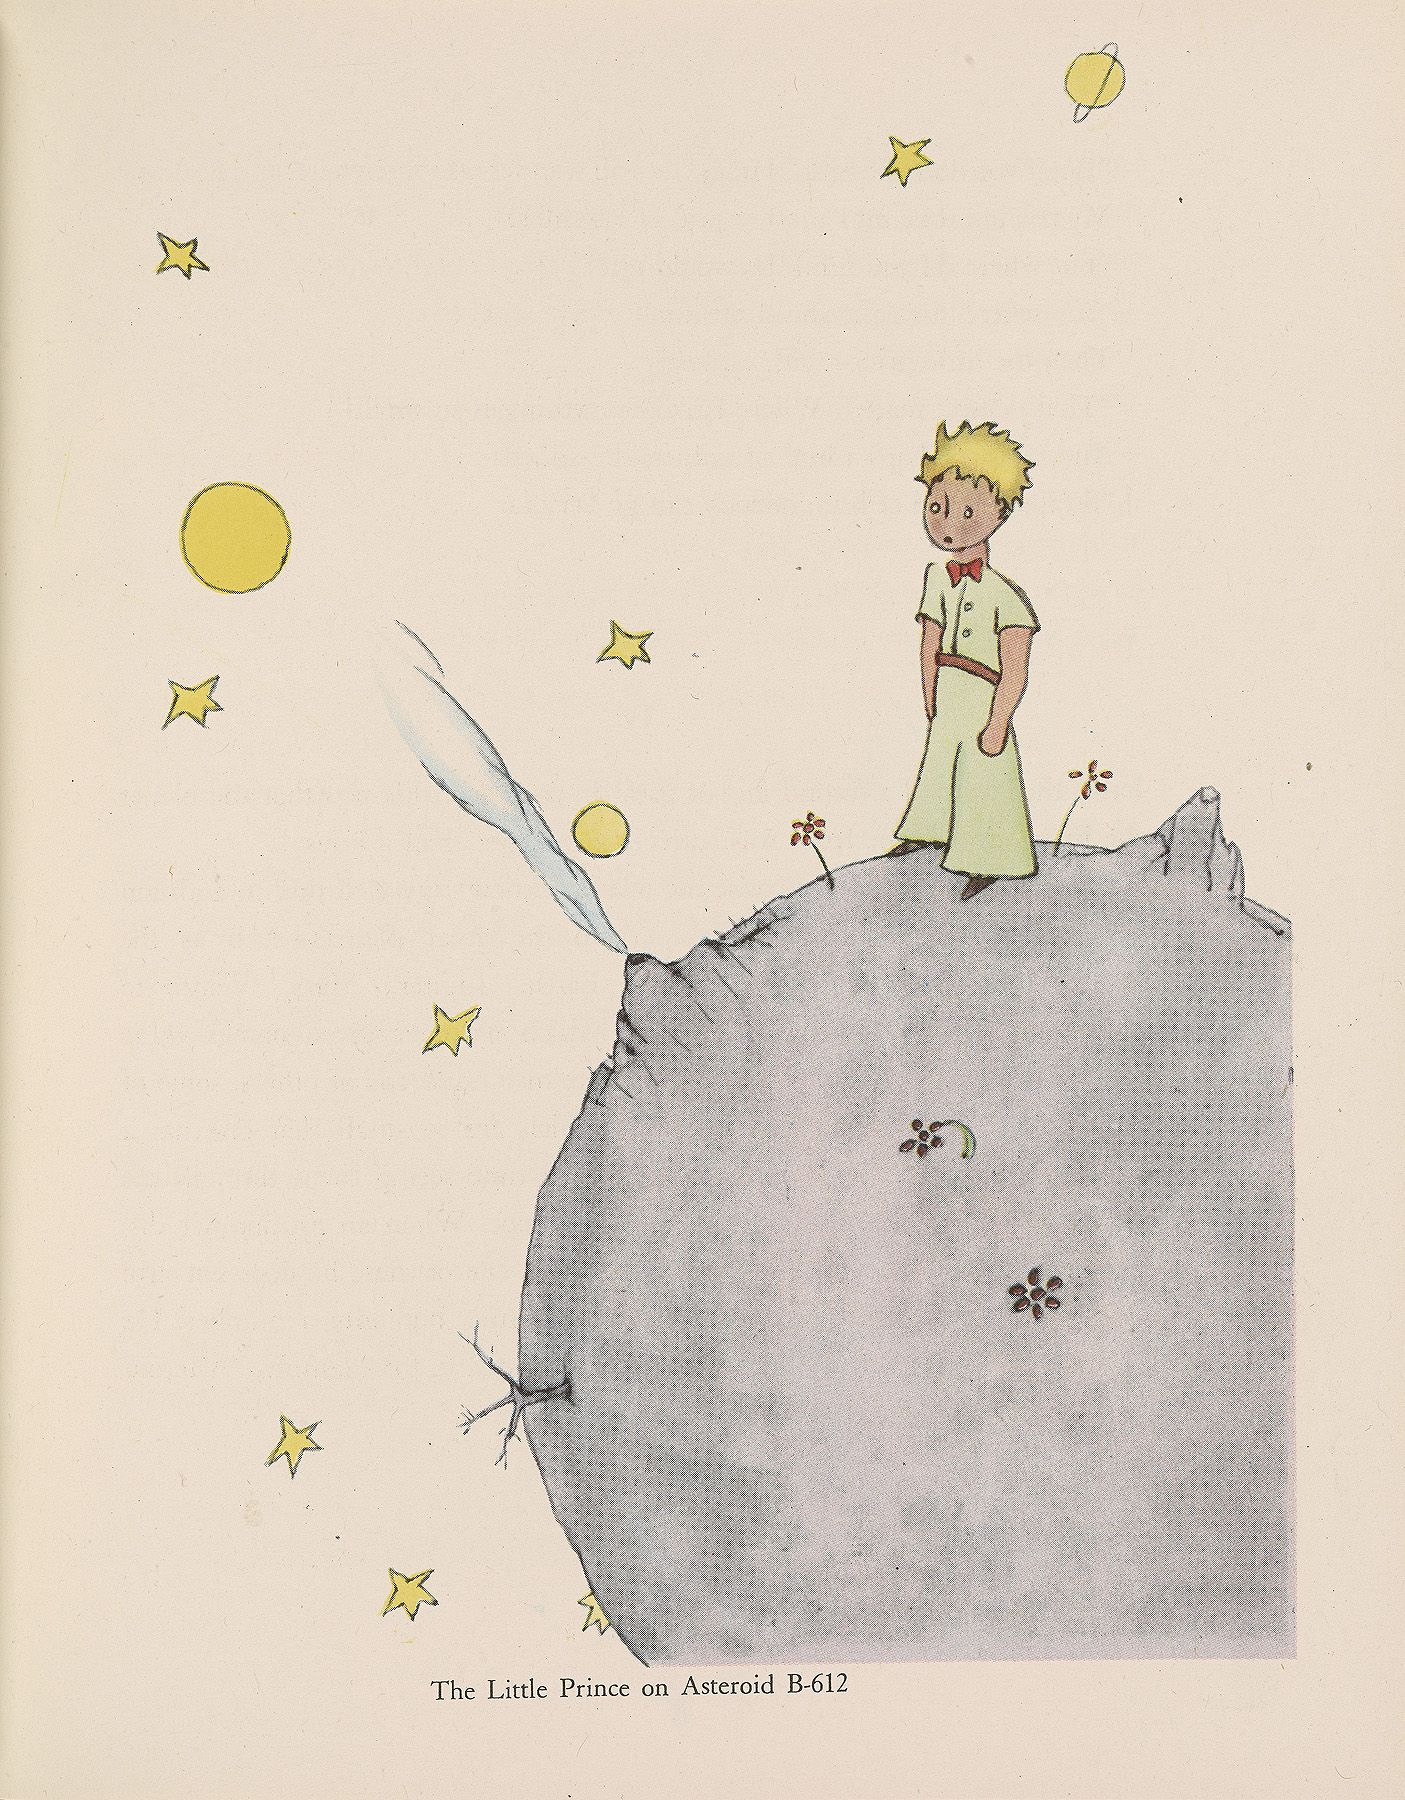 Little Prince New York the little prince: a new york story (with images) | books